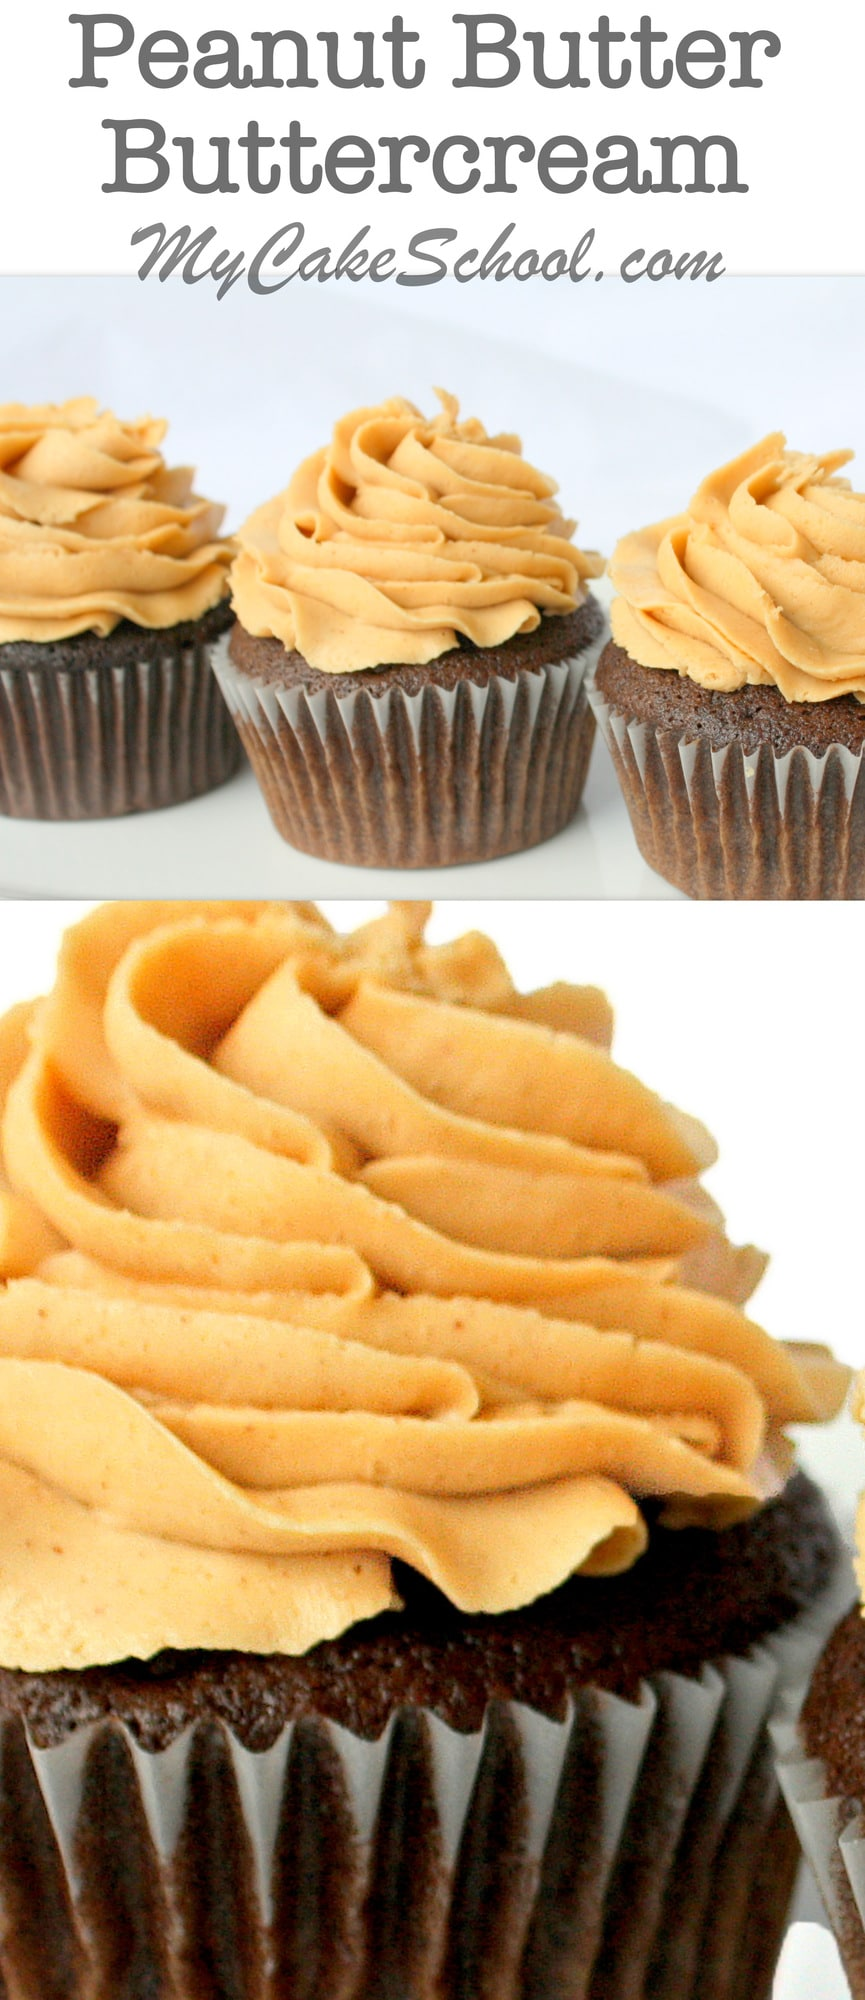 AMAZING Peanut Butter Buttercream Frosting recipe by MyCakeSchool.com! You'll love this creamy, dreamy, simple frosting recipe!